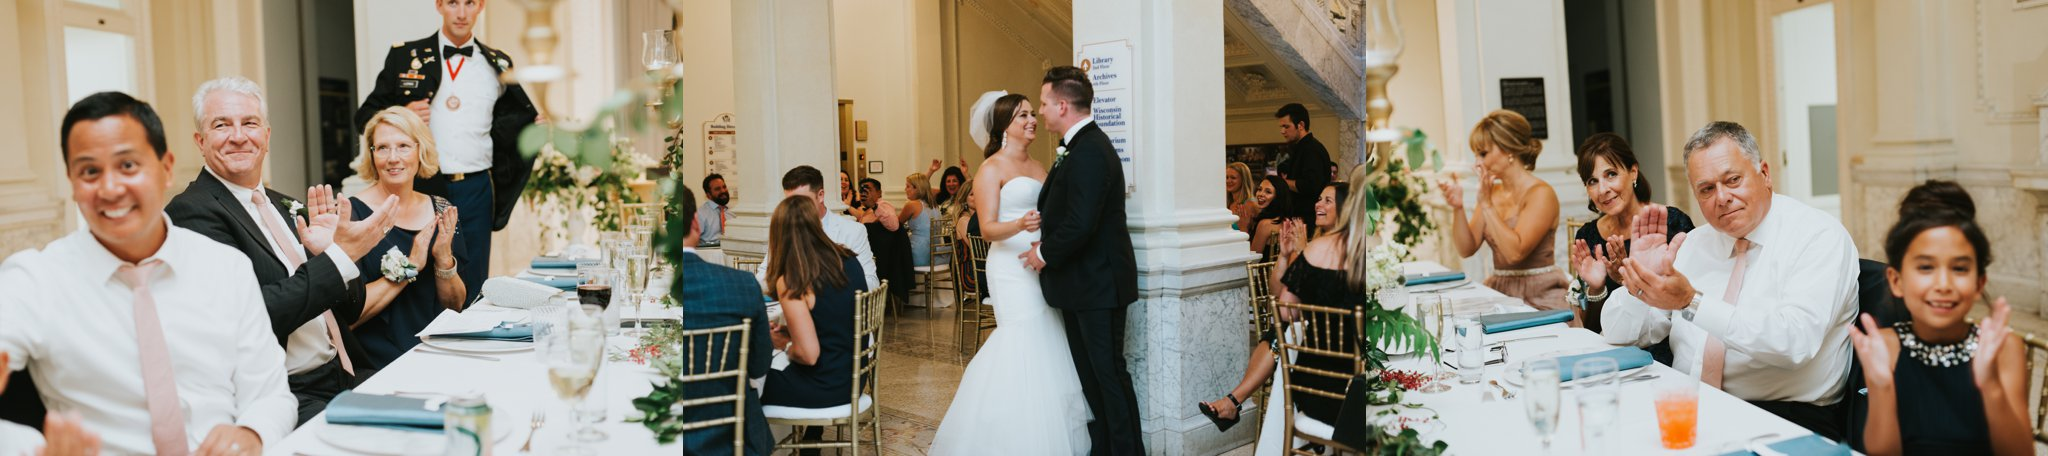 Wisconsin Historical Society Wedding